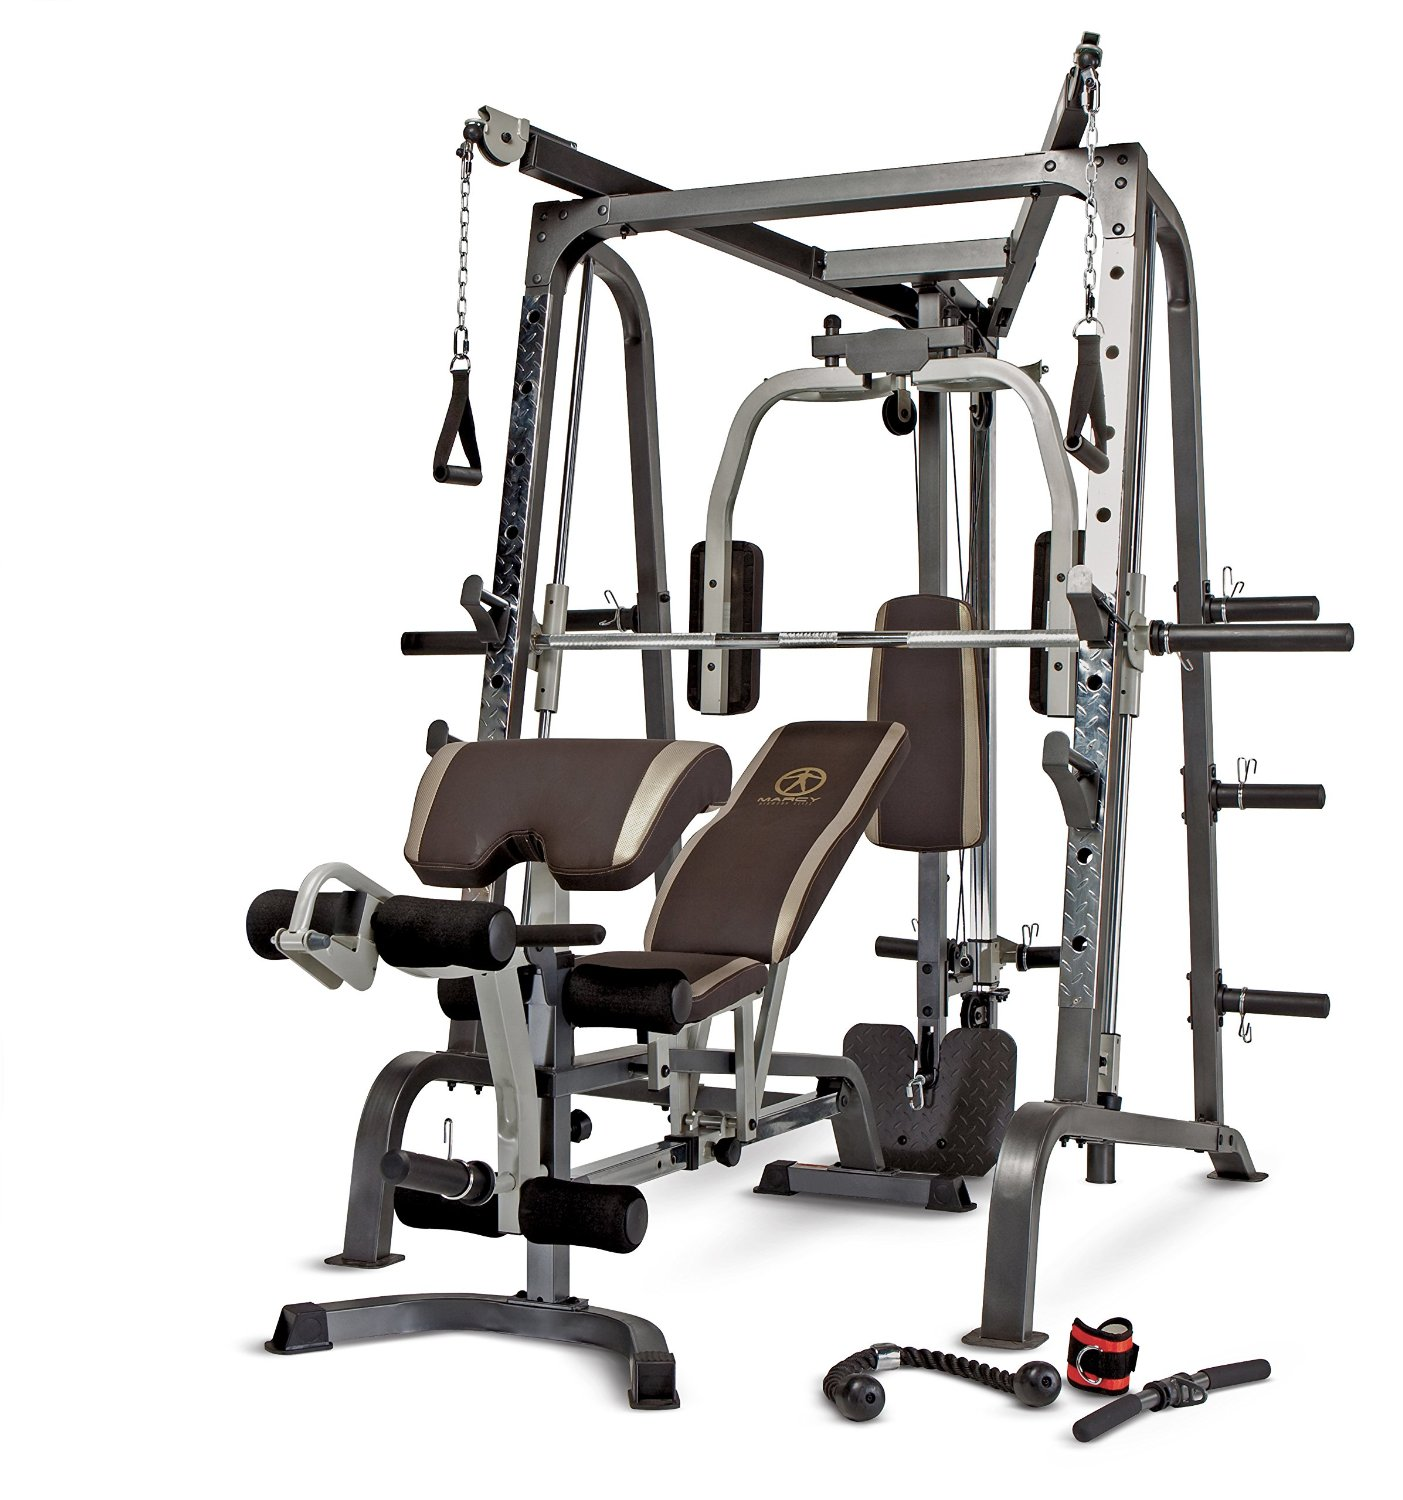 Garage Gym Reviews Titan Best Smith Machine For Home Or Garage Gym Top 10 Reviews 2019